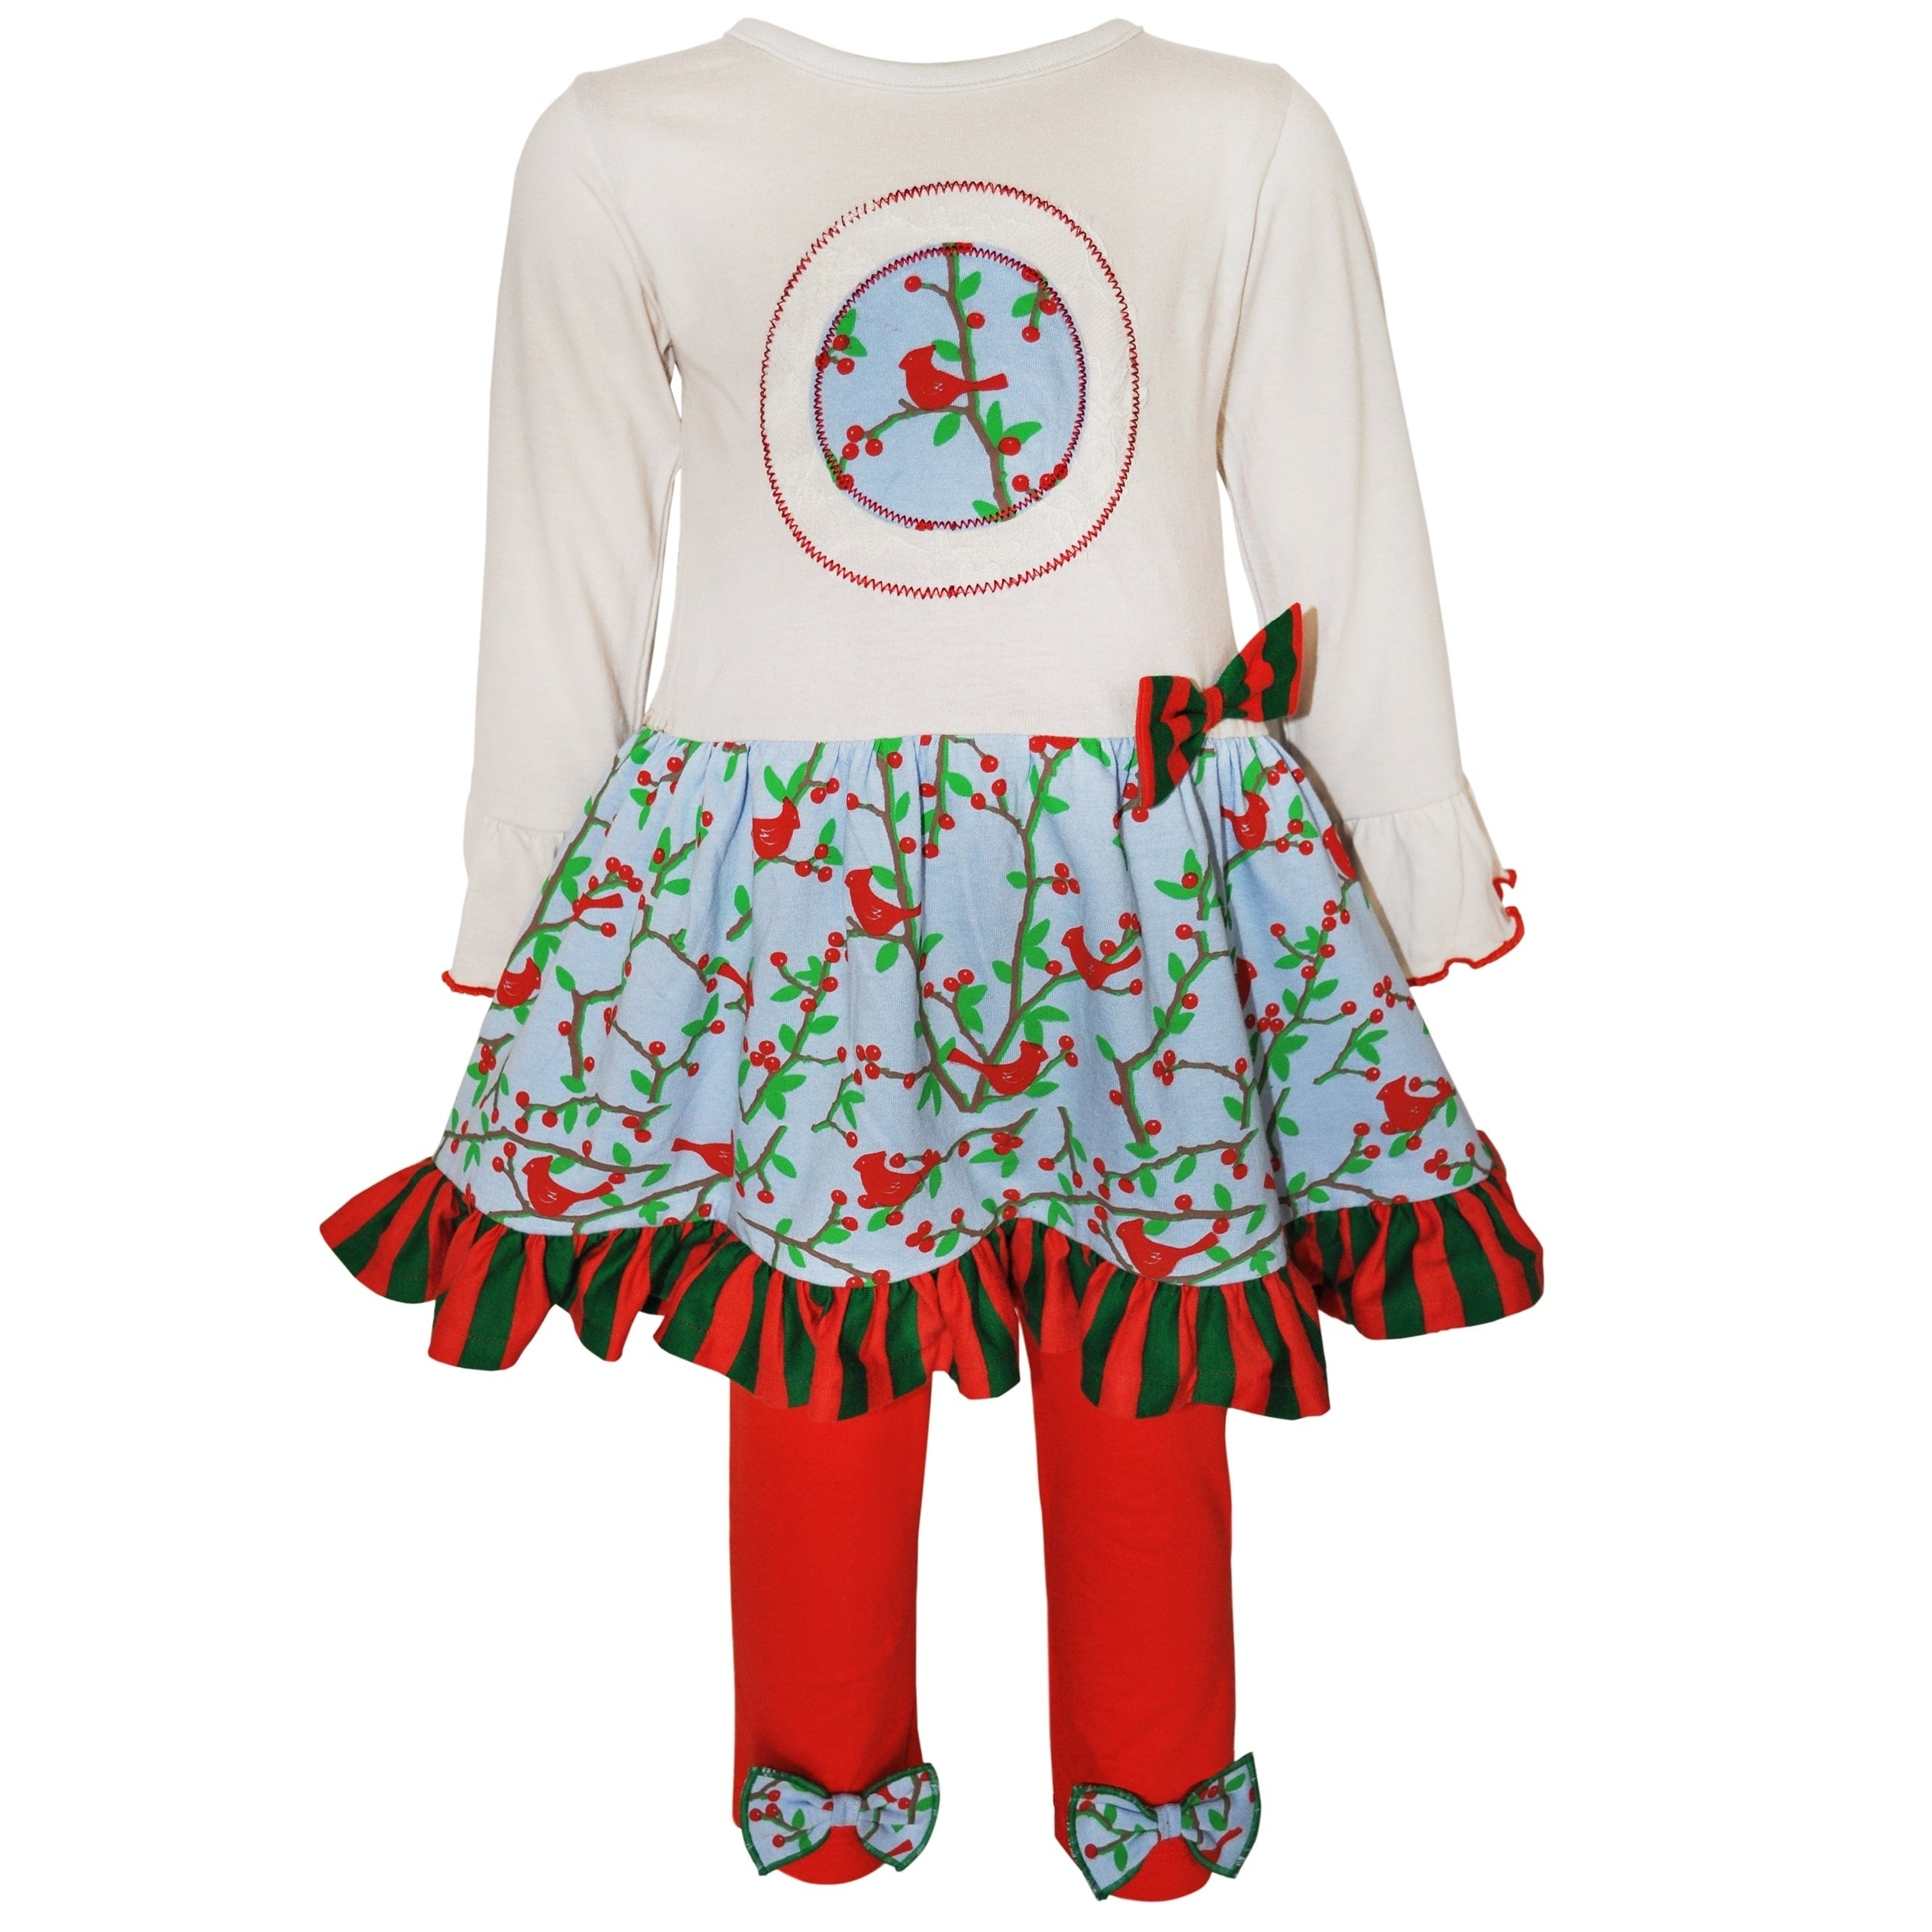 AnnLoren AnnLoren Girls Multicolored Cotton Dress and Leg...